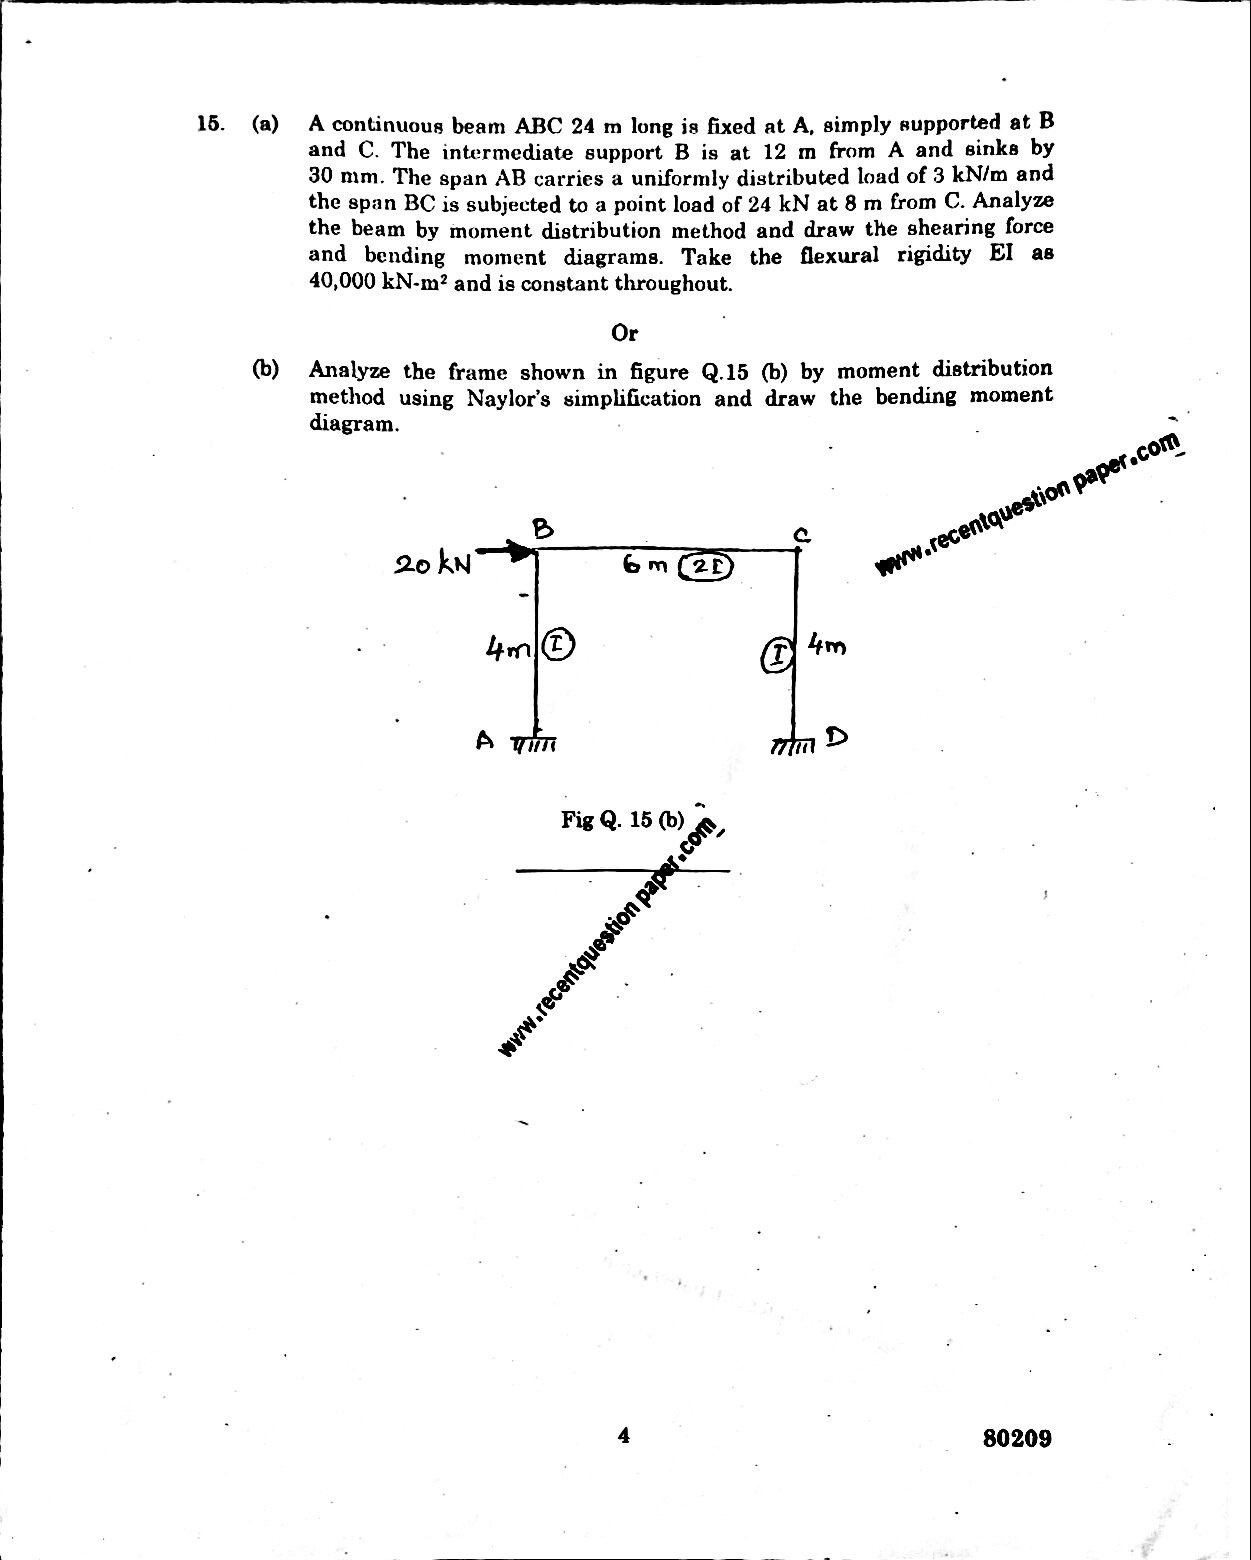 Ce6501 Structural Analysis I 3 Recent Question Paper Bending Moment Diagrams For Frames